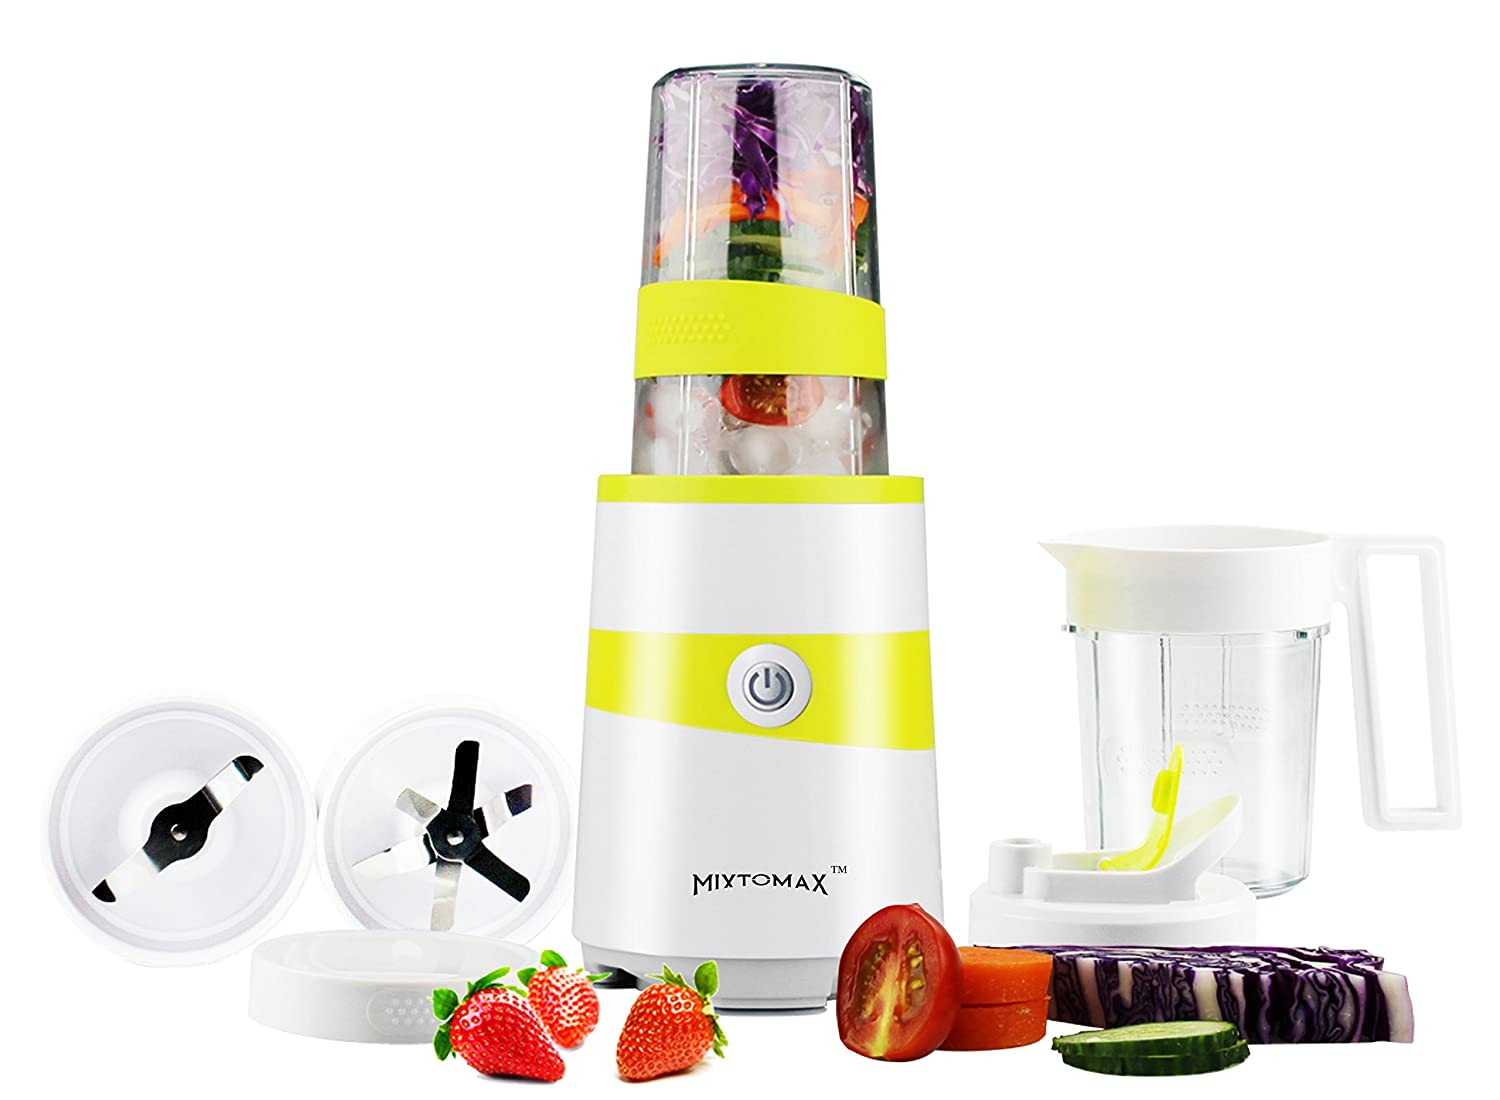 MixtoMax NB600 High Speed Smoothie Blender Multifunctional Mixer 1000W Compact and High-Power with 2 BPA Free Cups and 2 Stainless Steel Blades for Extracting and Milling